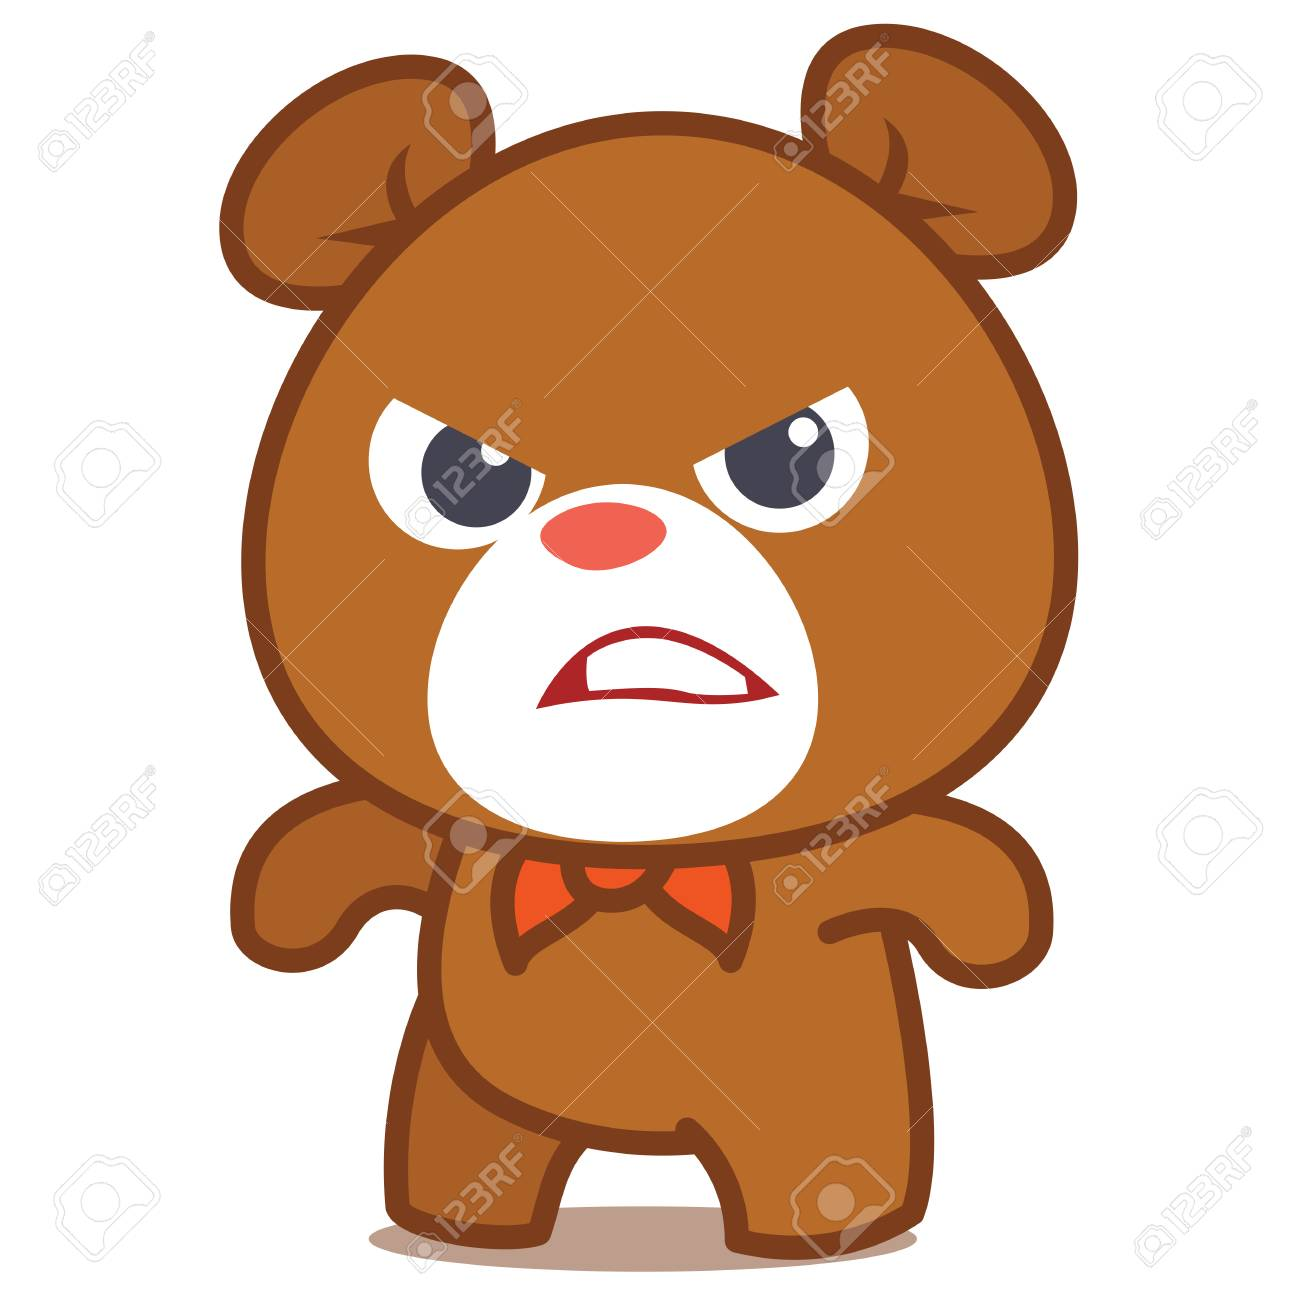 Angry bear character vector art collection stock.